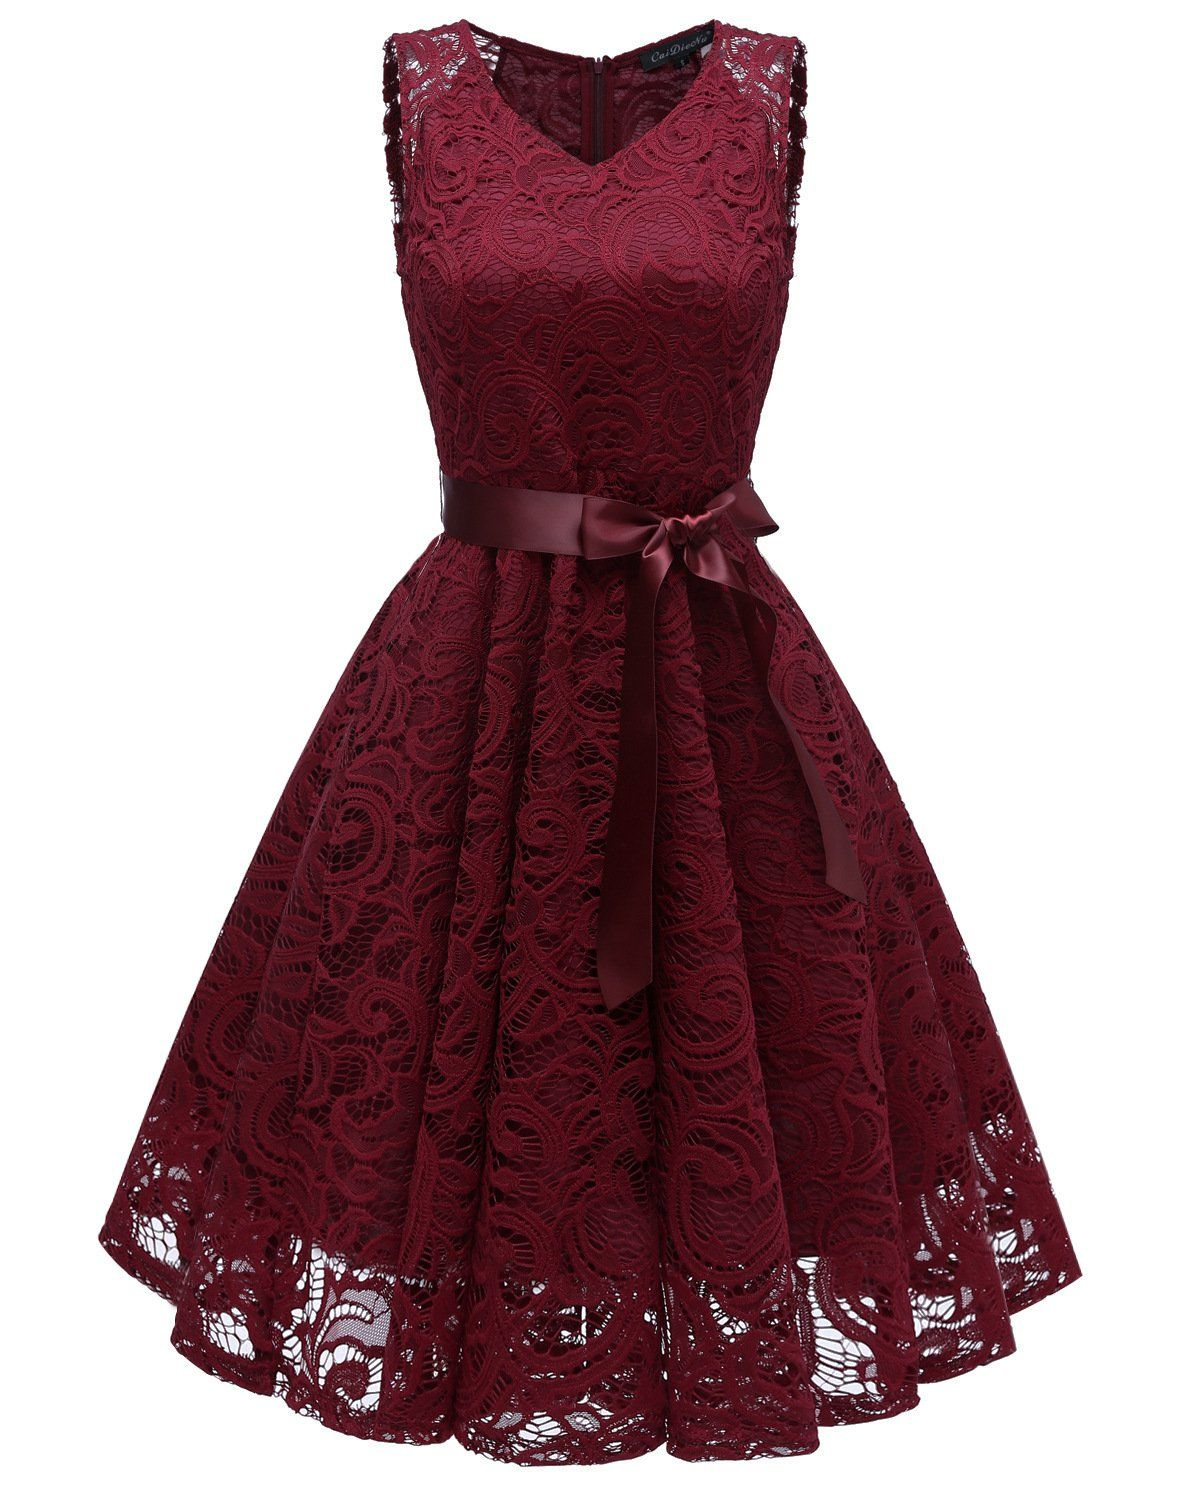 92d41b6dfc3a3 Lace Patchwork Vintage Dress – Pink-Always | Dresses in 2019 ...